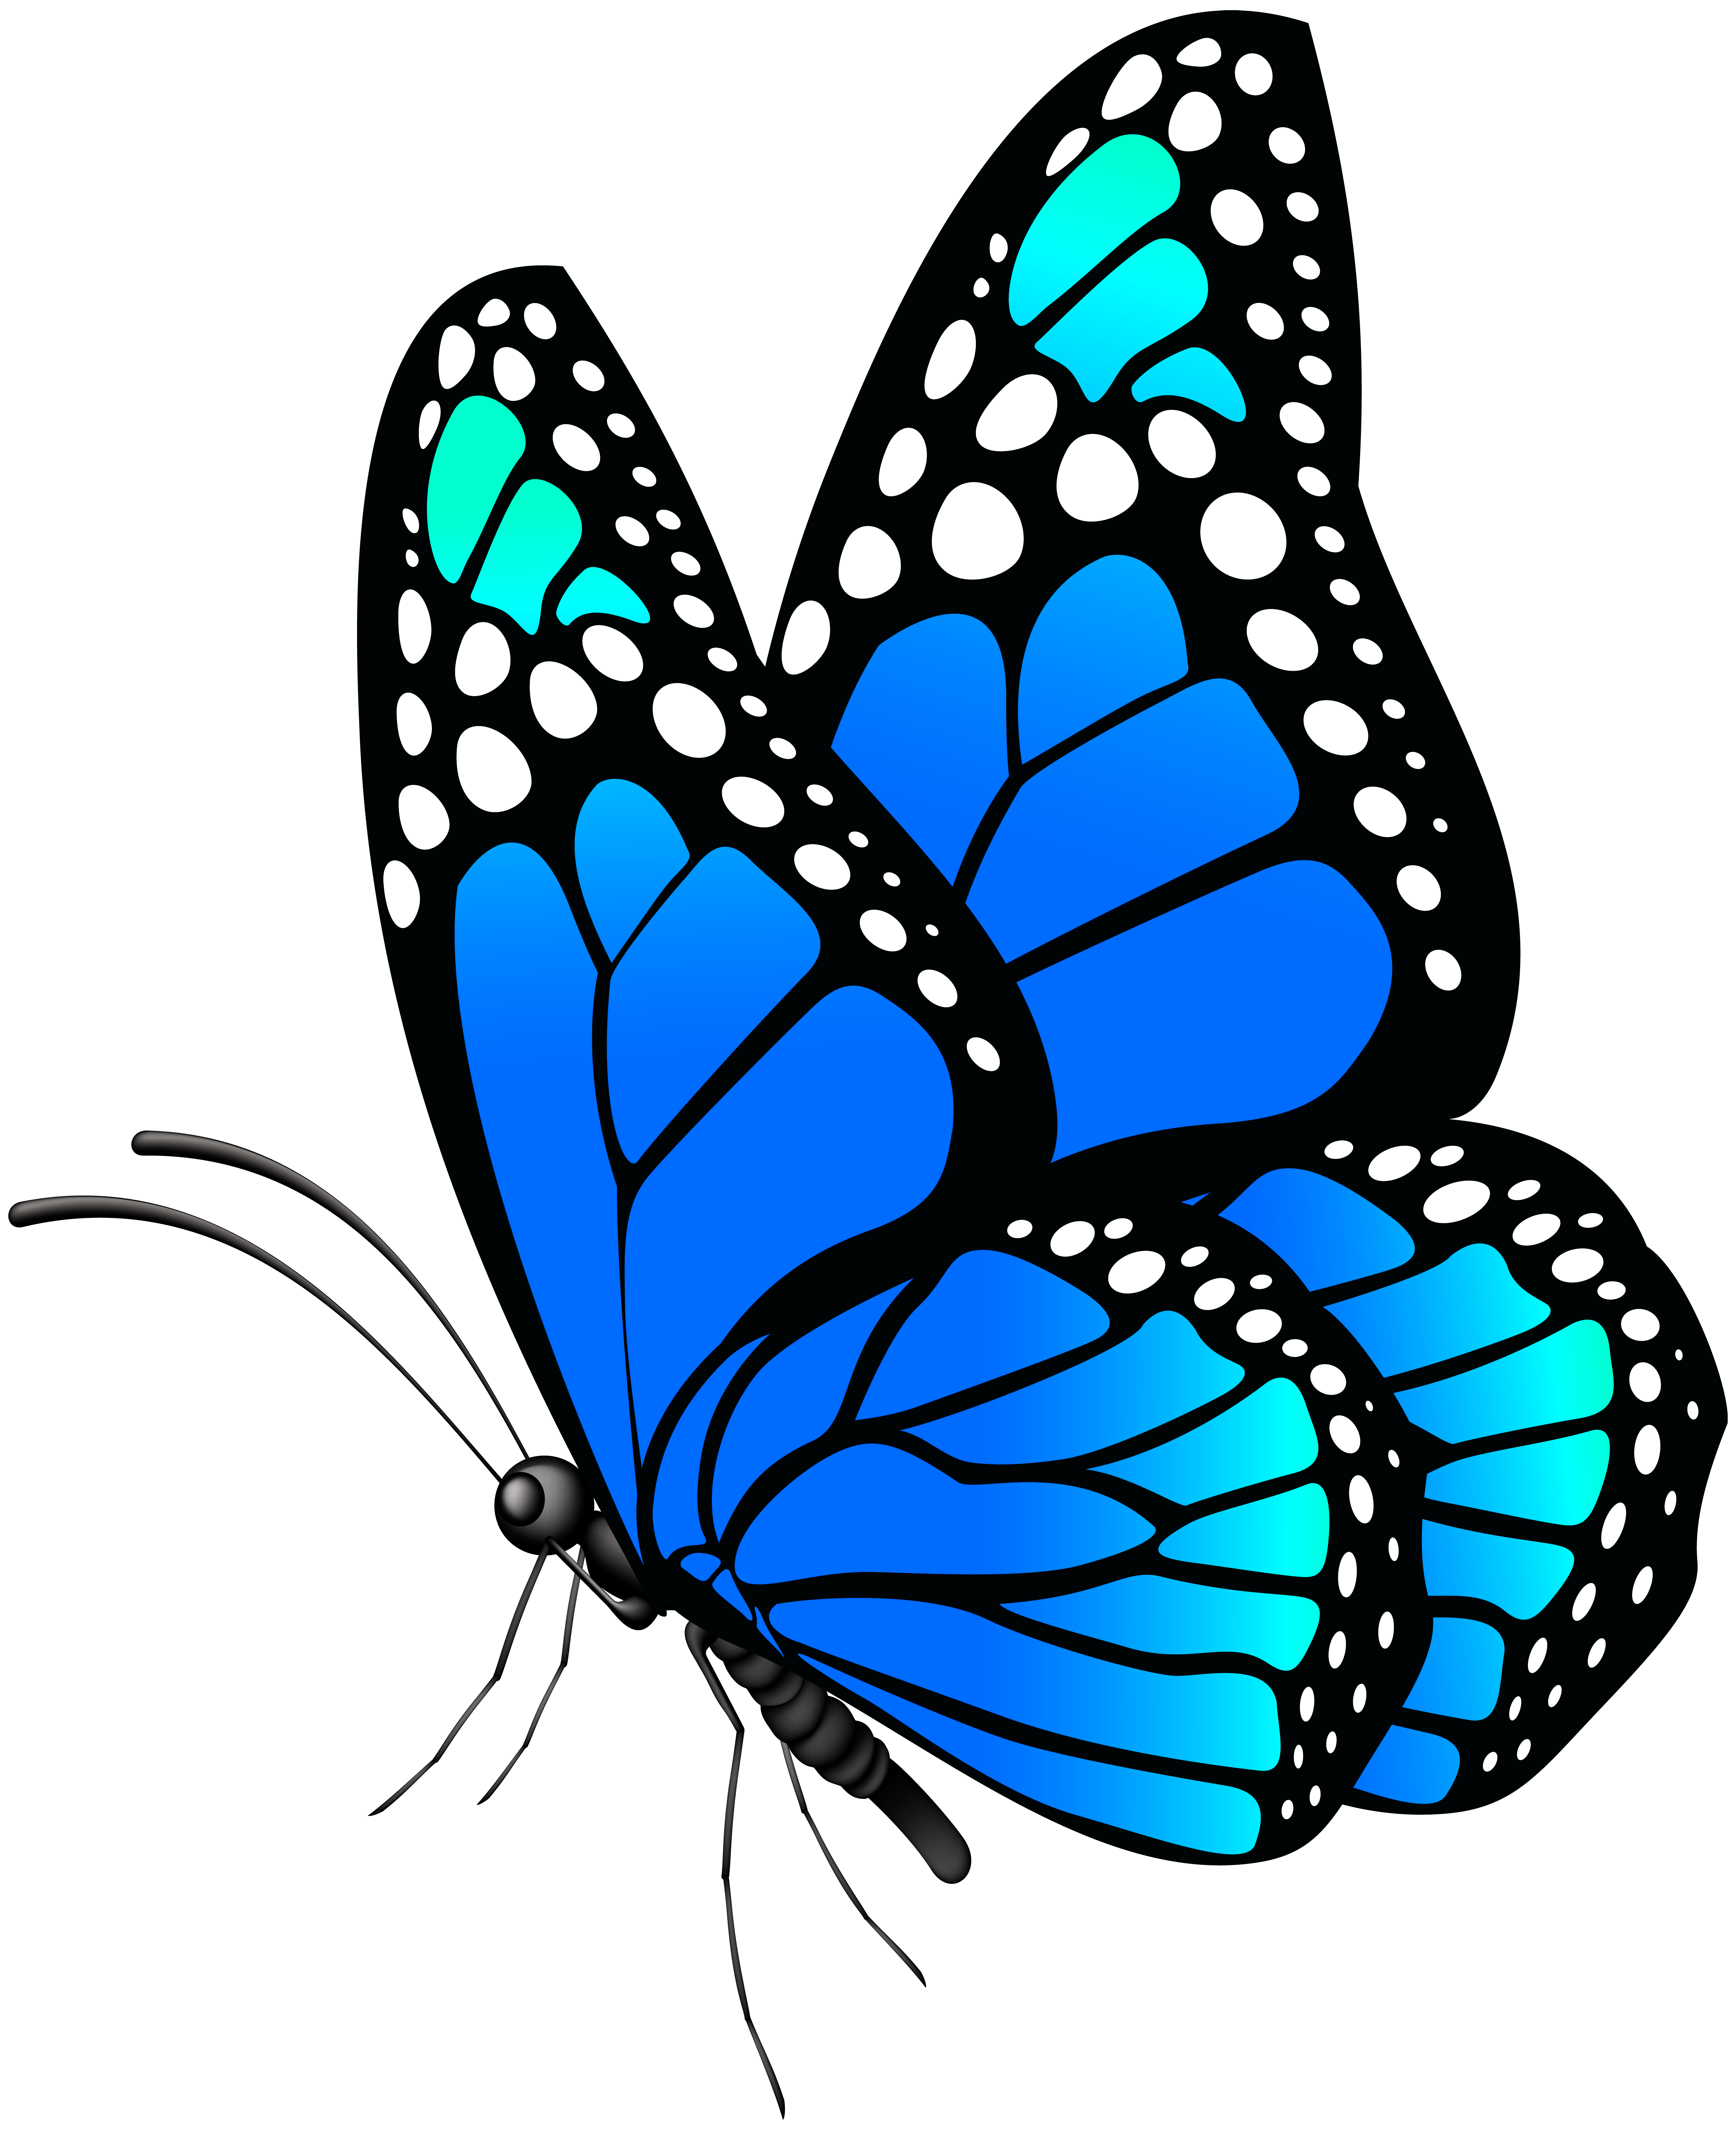 image Moth clipart realistic. Monarch butterfly at getdrawings.